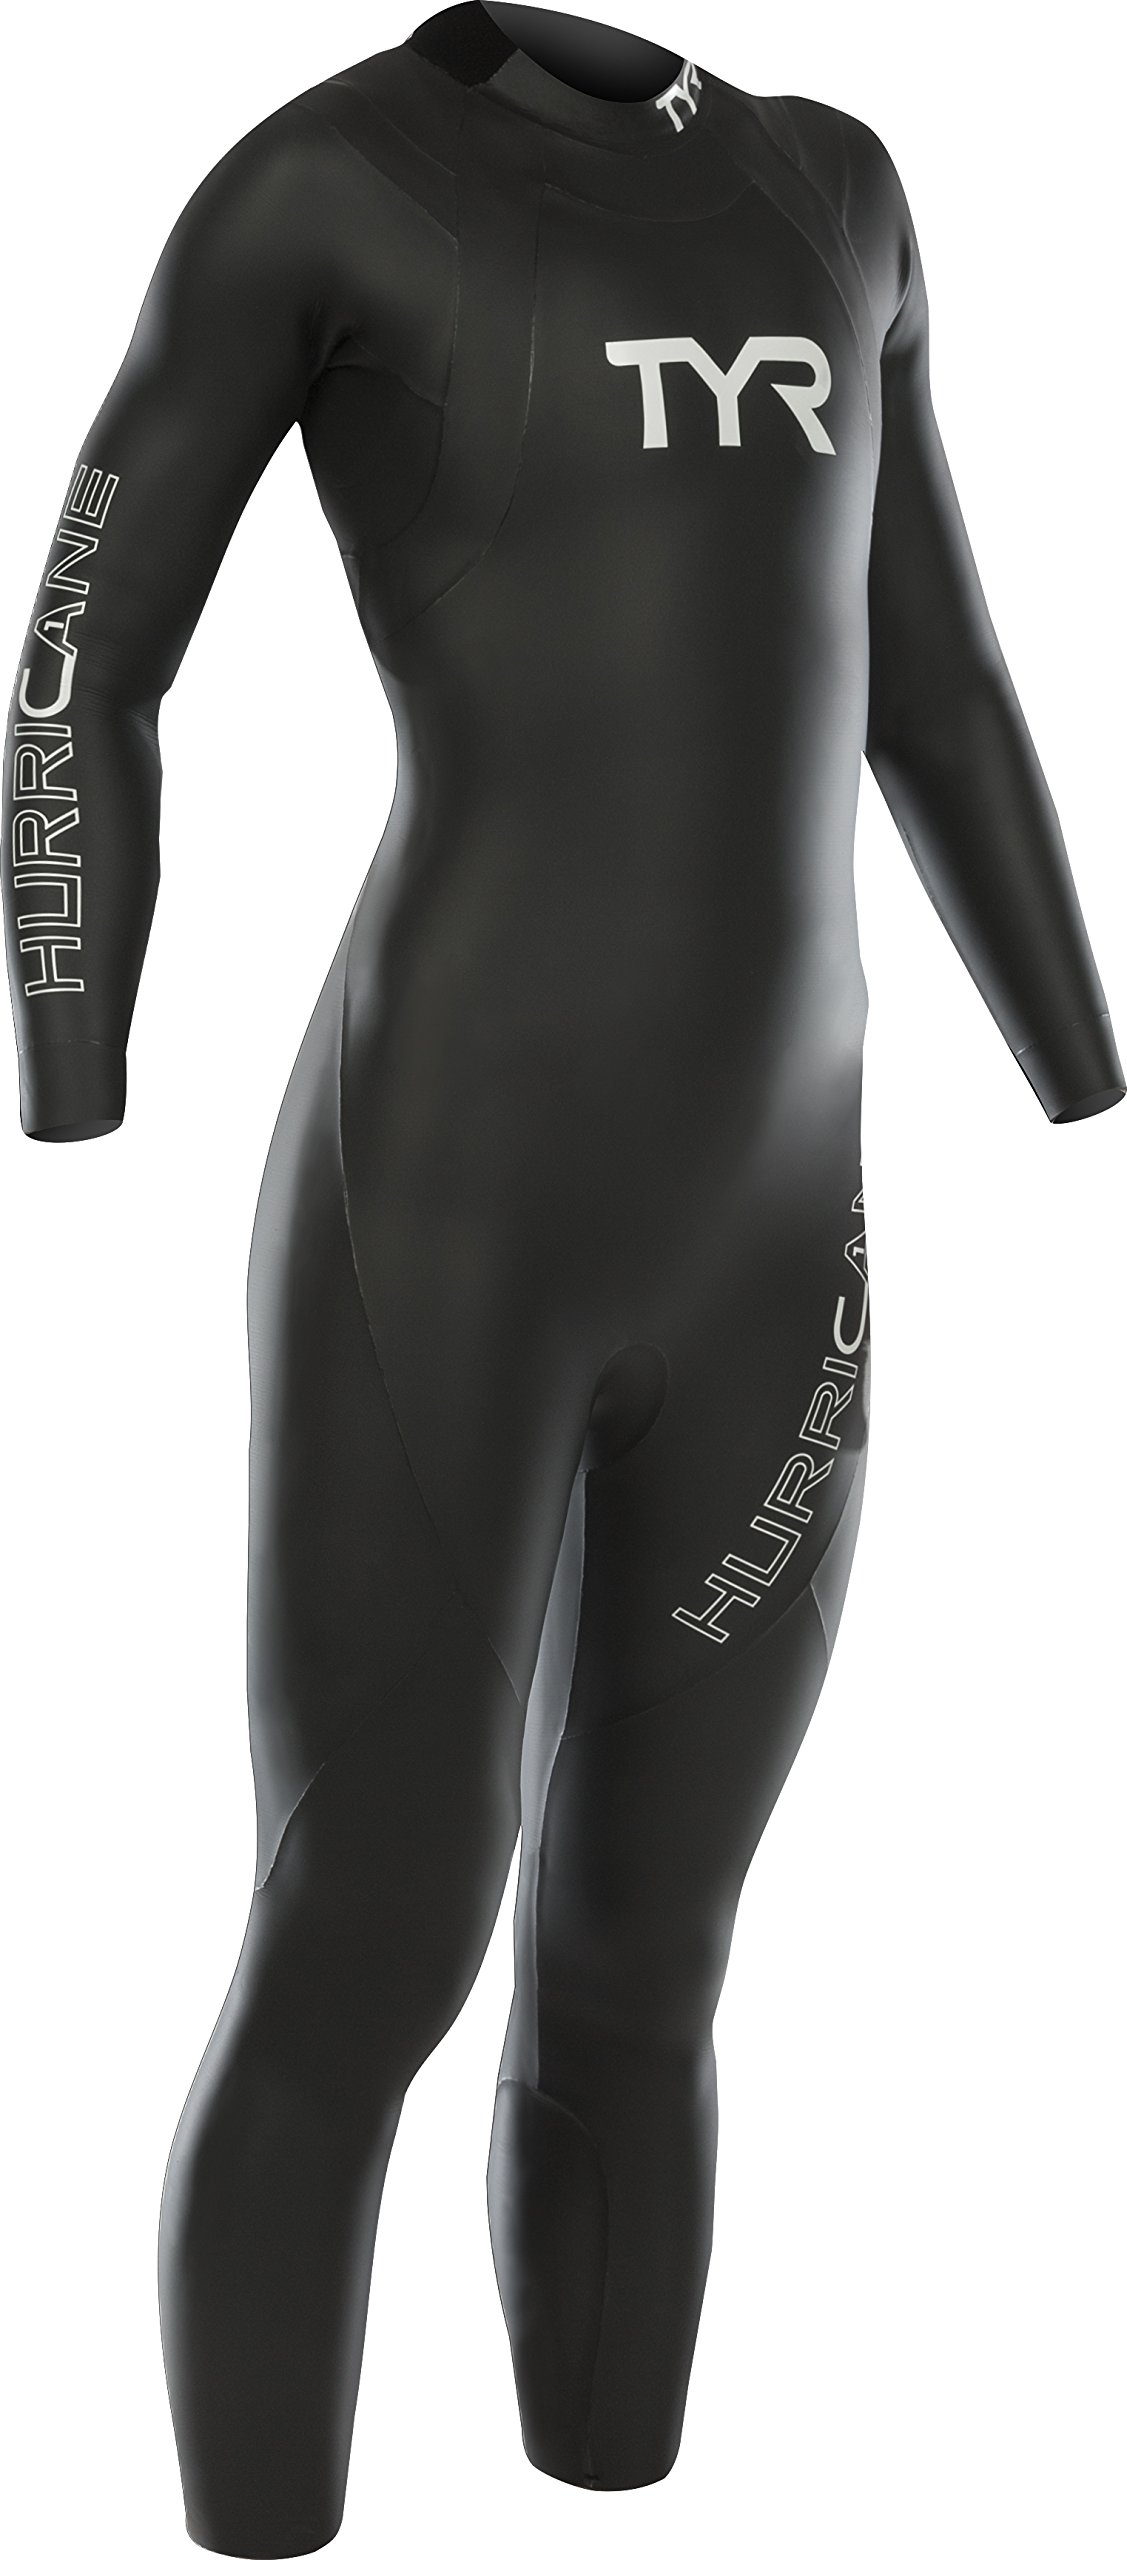 TYR Women's Hurricane Wetsuit Category 1, Black/White, X-Small